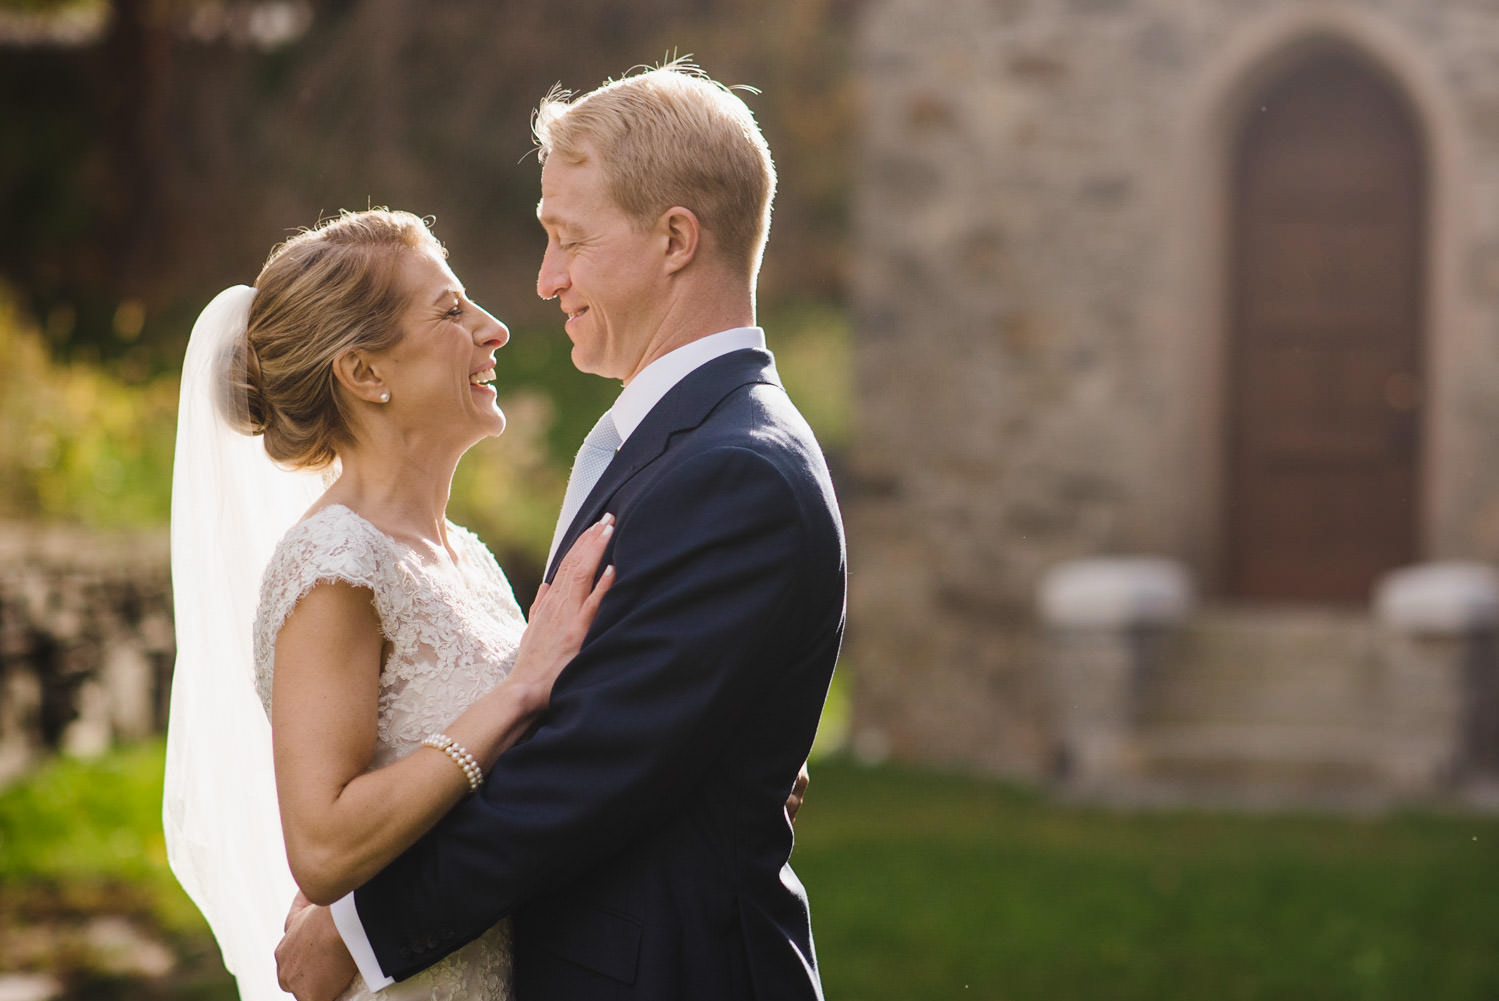 Woodstock, Vermont Wedding bride and groom smiling photo